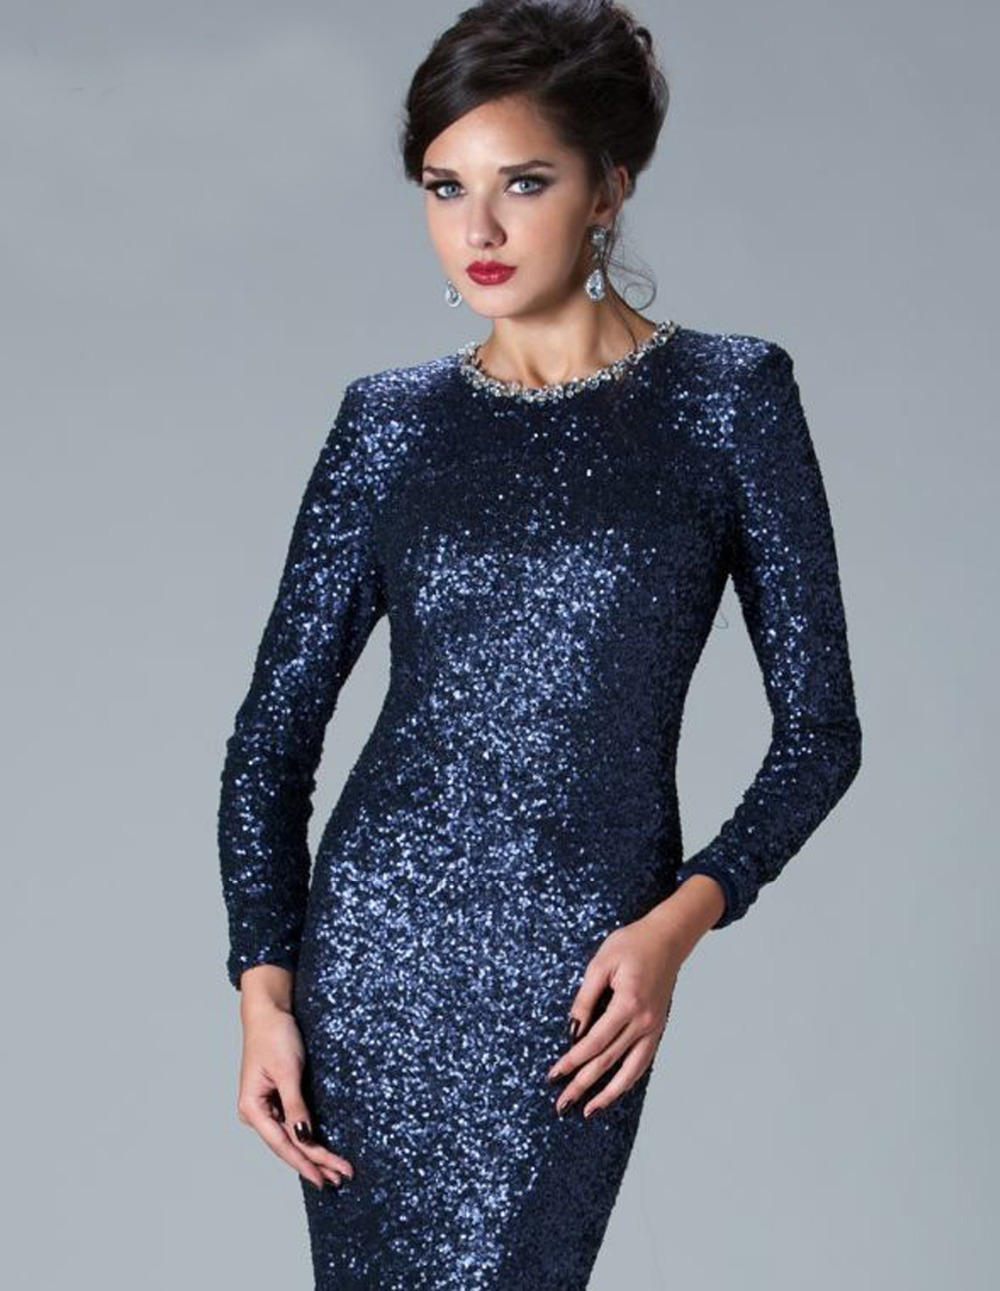 Funky Long Sleeve Sequin Party Dress Picture Collection - All ...